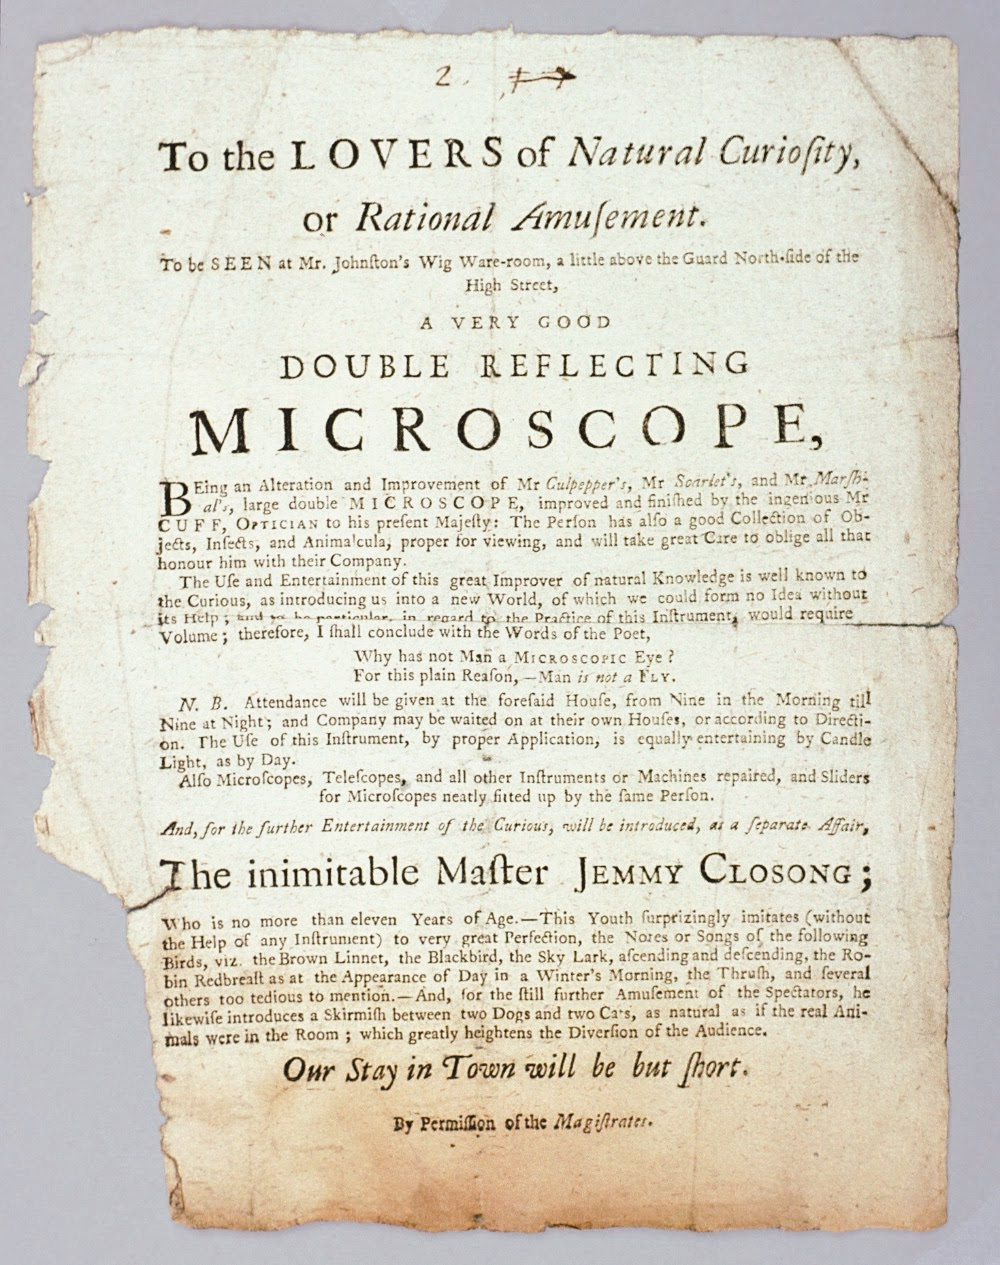 Advertisement for a microscope demonstration